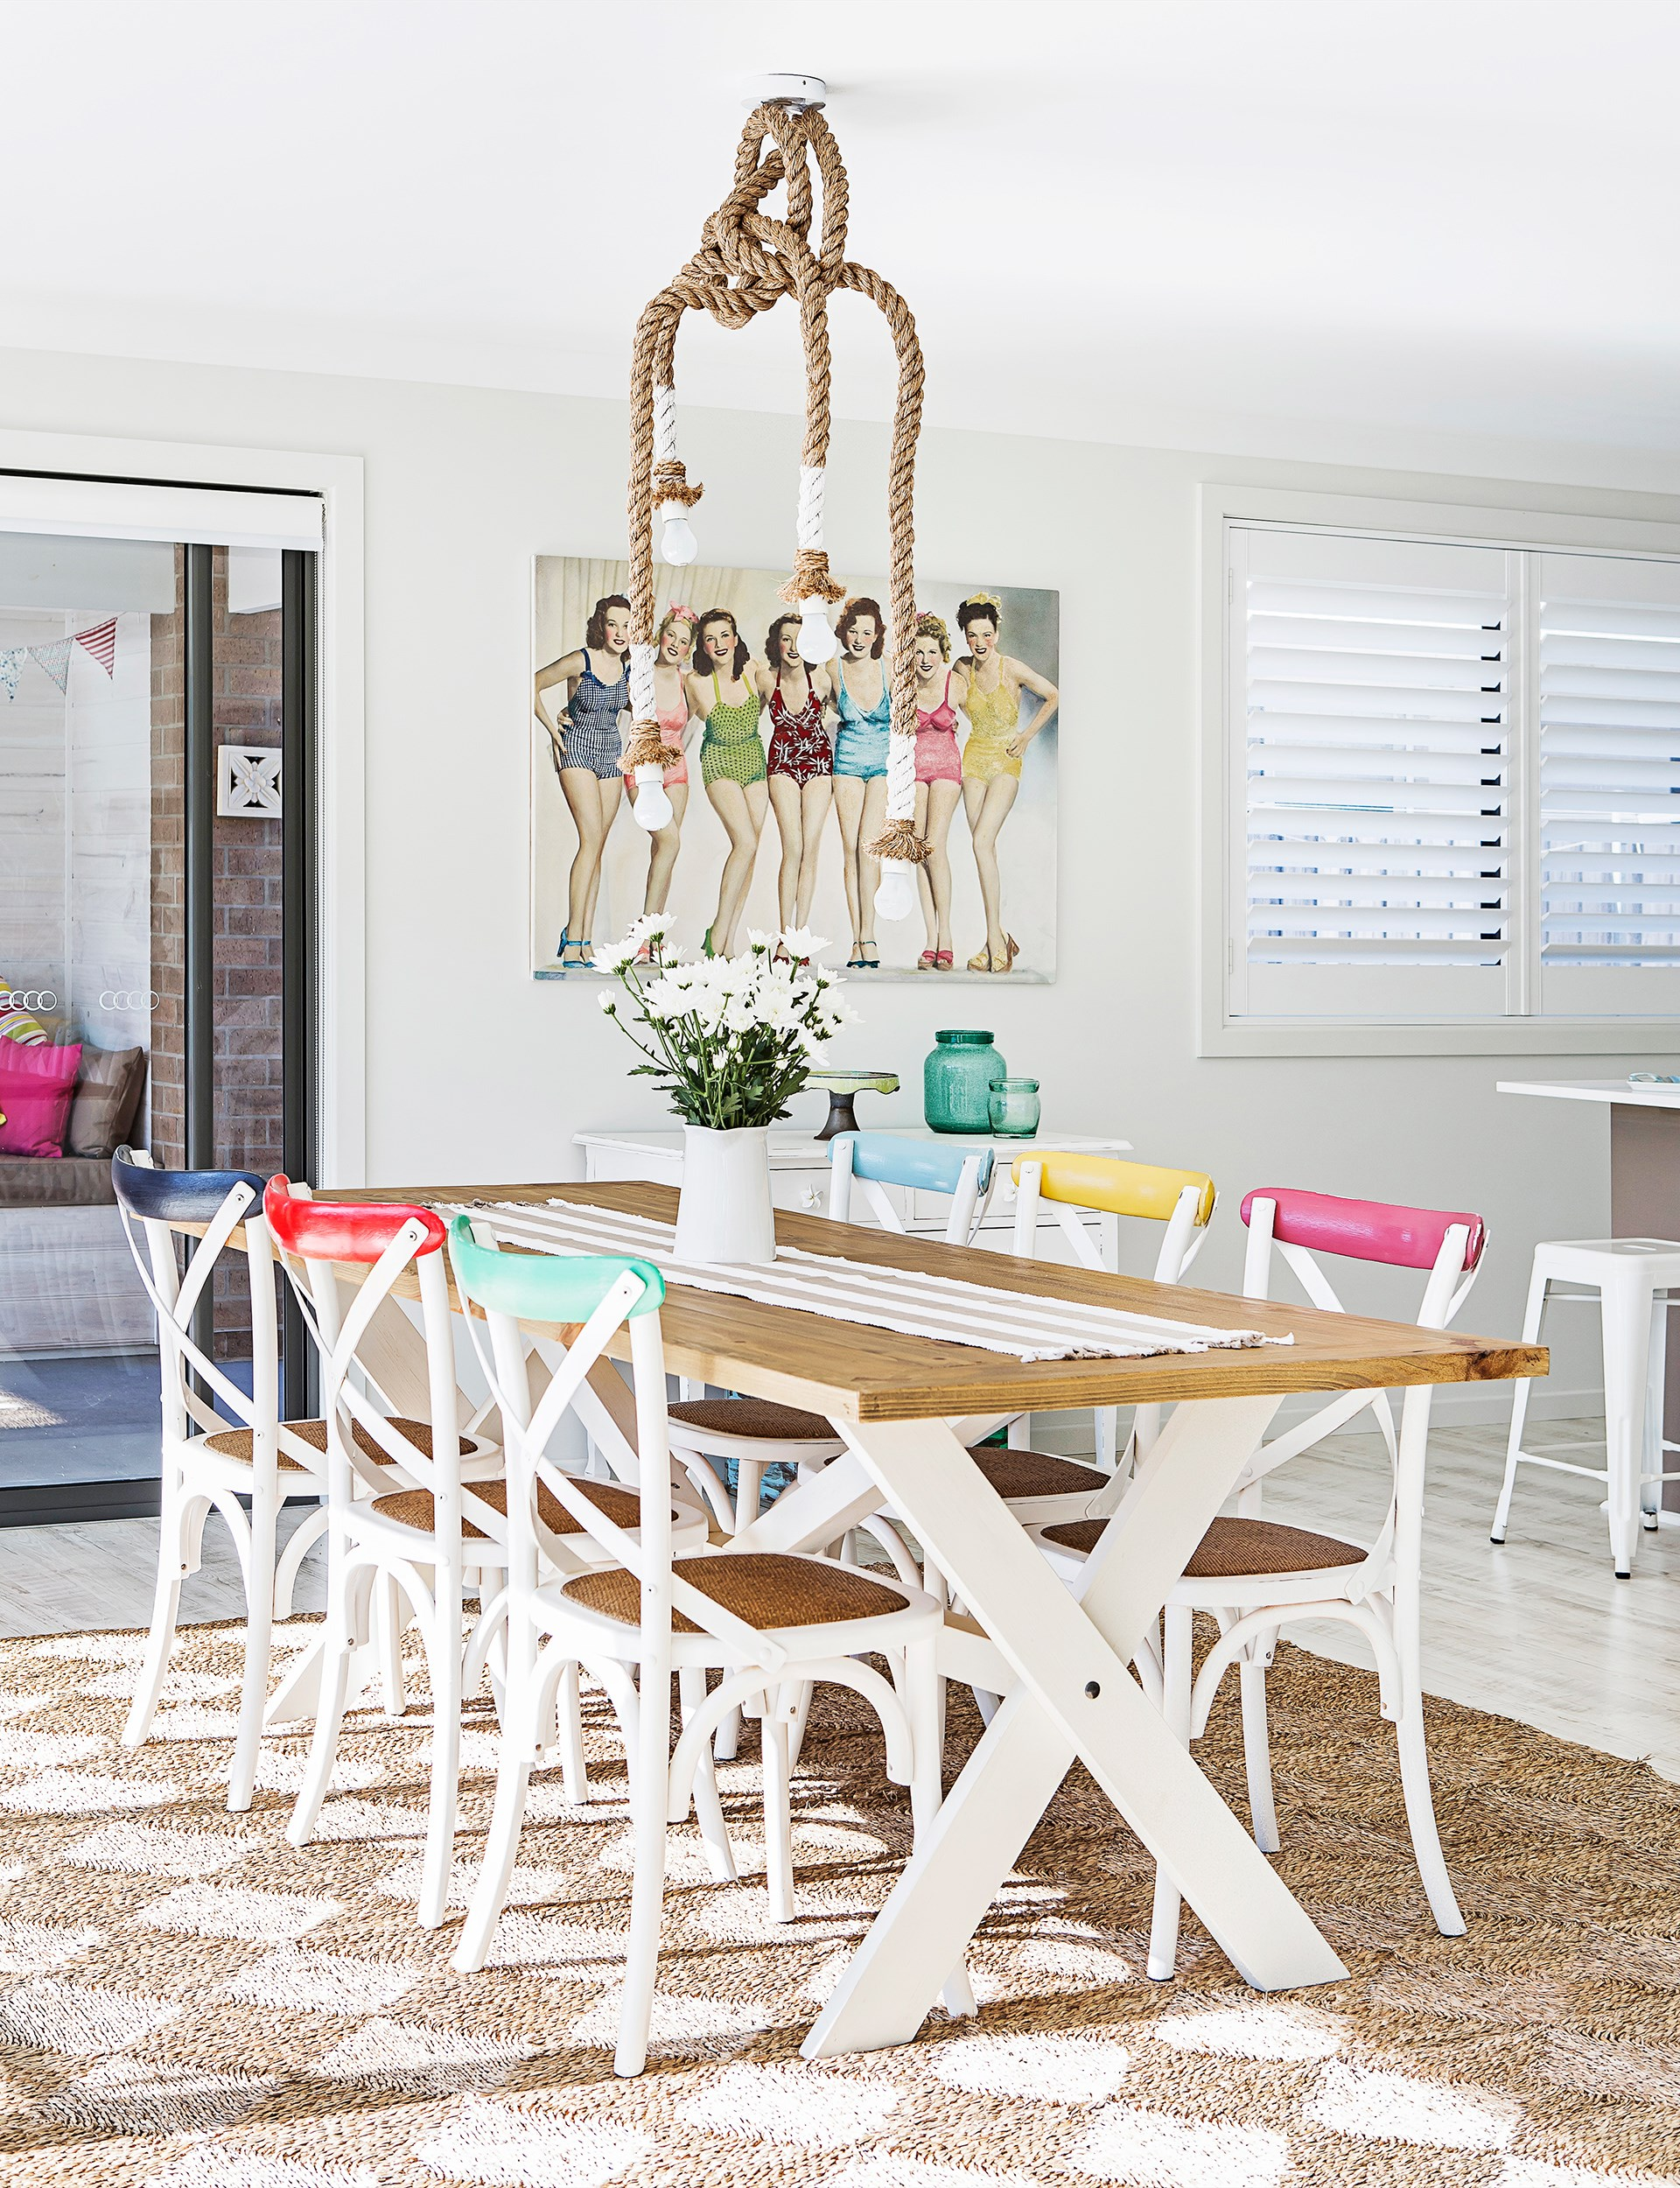 "A rope pendant light from [Freedom](http://www.freedom.com.au/?utm_campaign=supplier/|target=""_blank"") adds to the beachy vibes of this fresh, fun dining area. Take the tour of this [coastal-style overhaul of a single storey home](http://www.homestolove.com.au/empty-nesters-embrace-coastal-style-2918